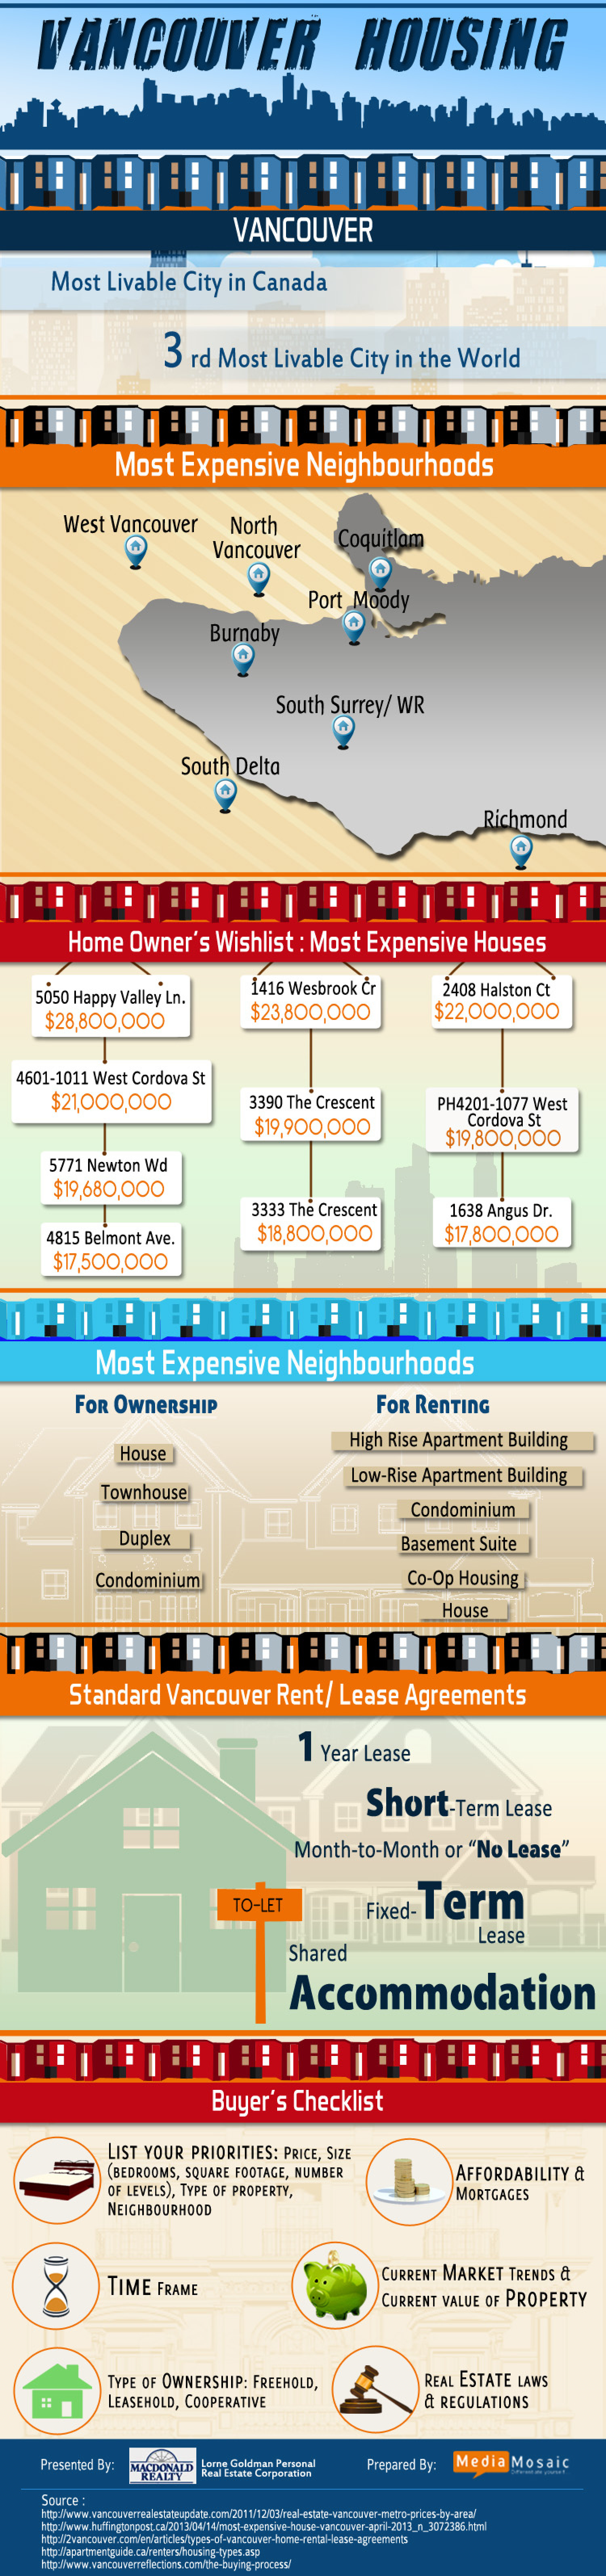 Vancouver Housing: An Exclusive Vancouver Real Estate Infographic Infographic